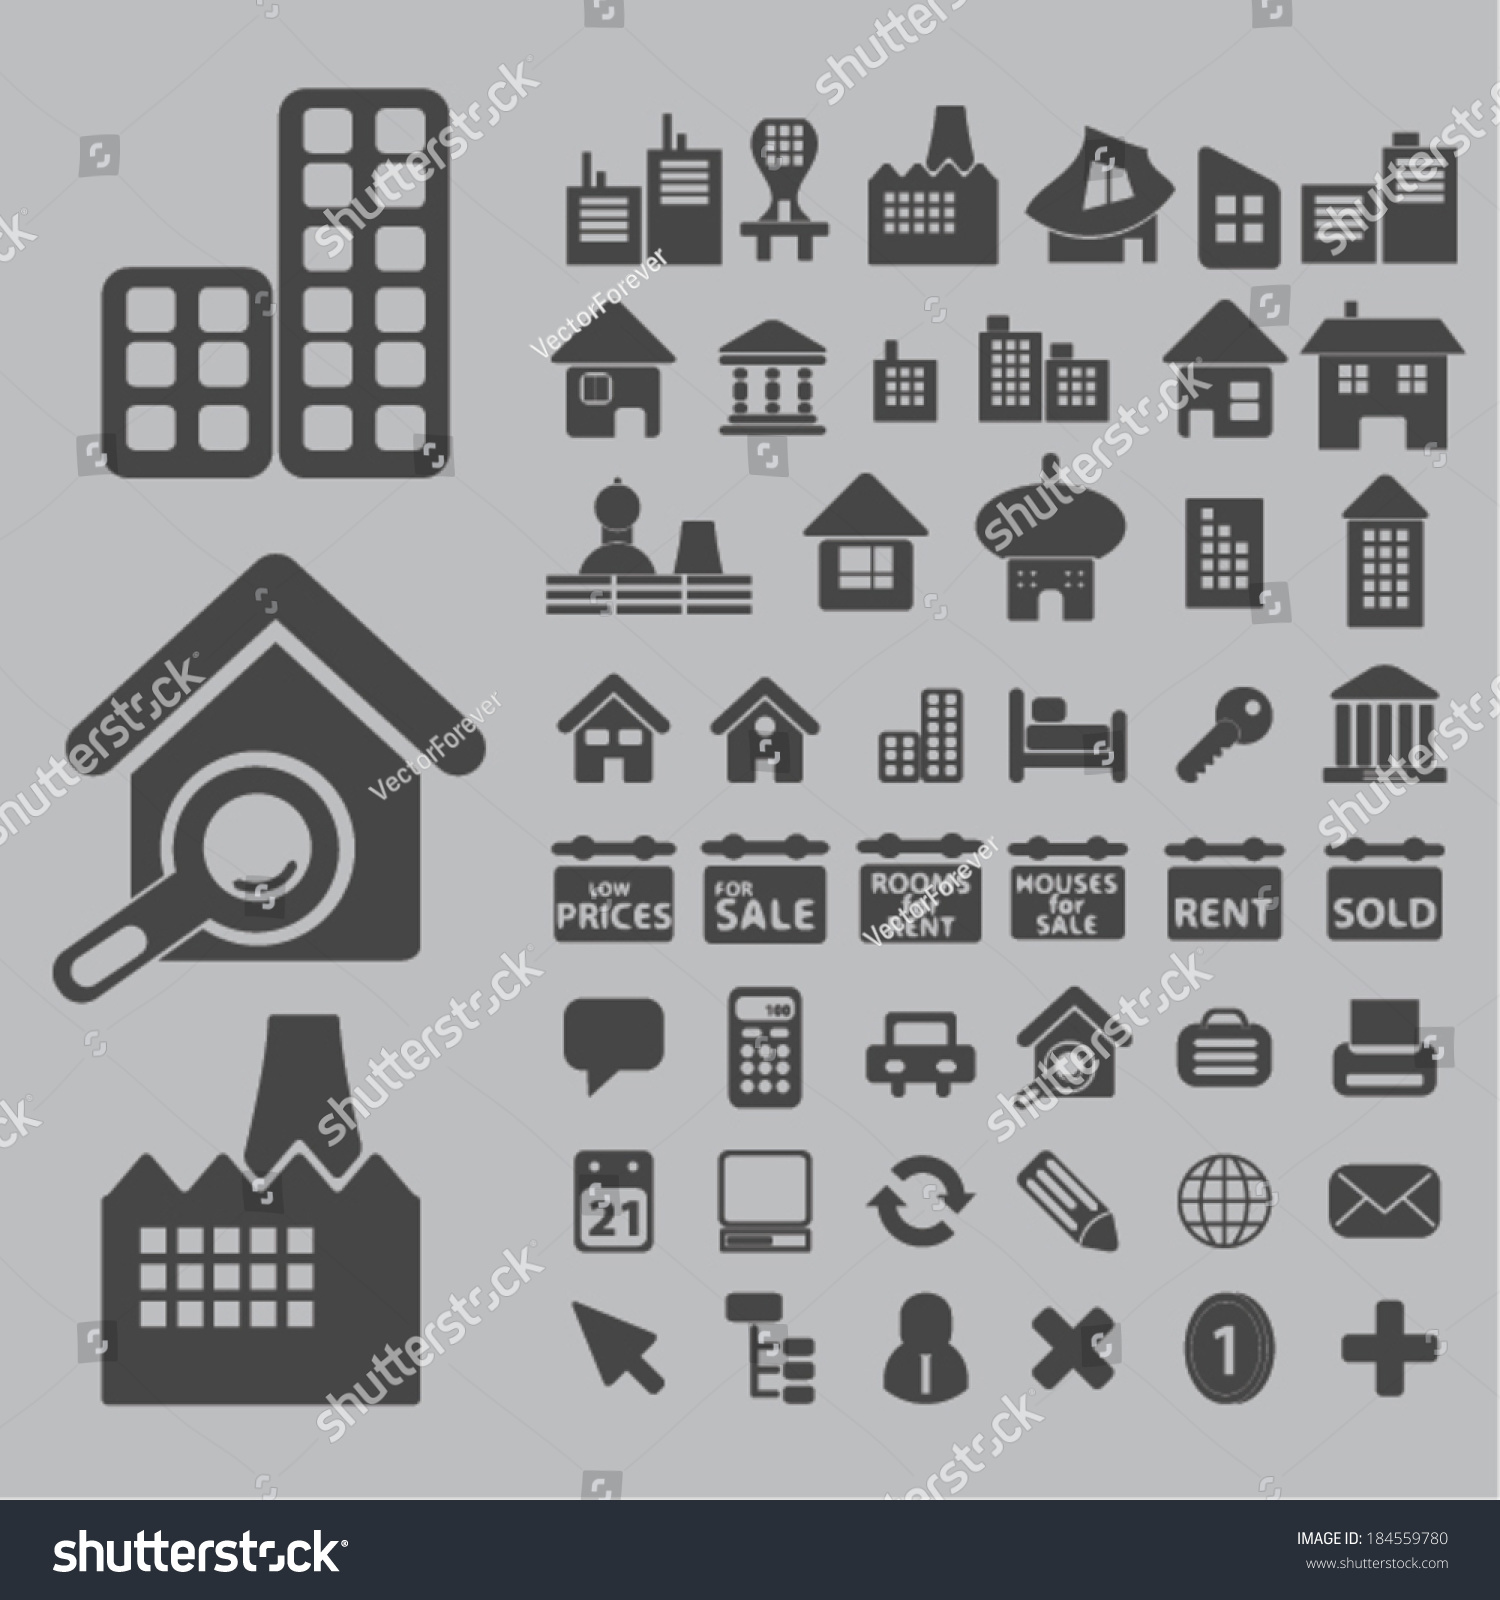 Architecture Houses Buildings Icons Signs Set For Website Apps Internet Design Stock Vector Illustration 184559780 Shutterstock